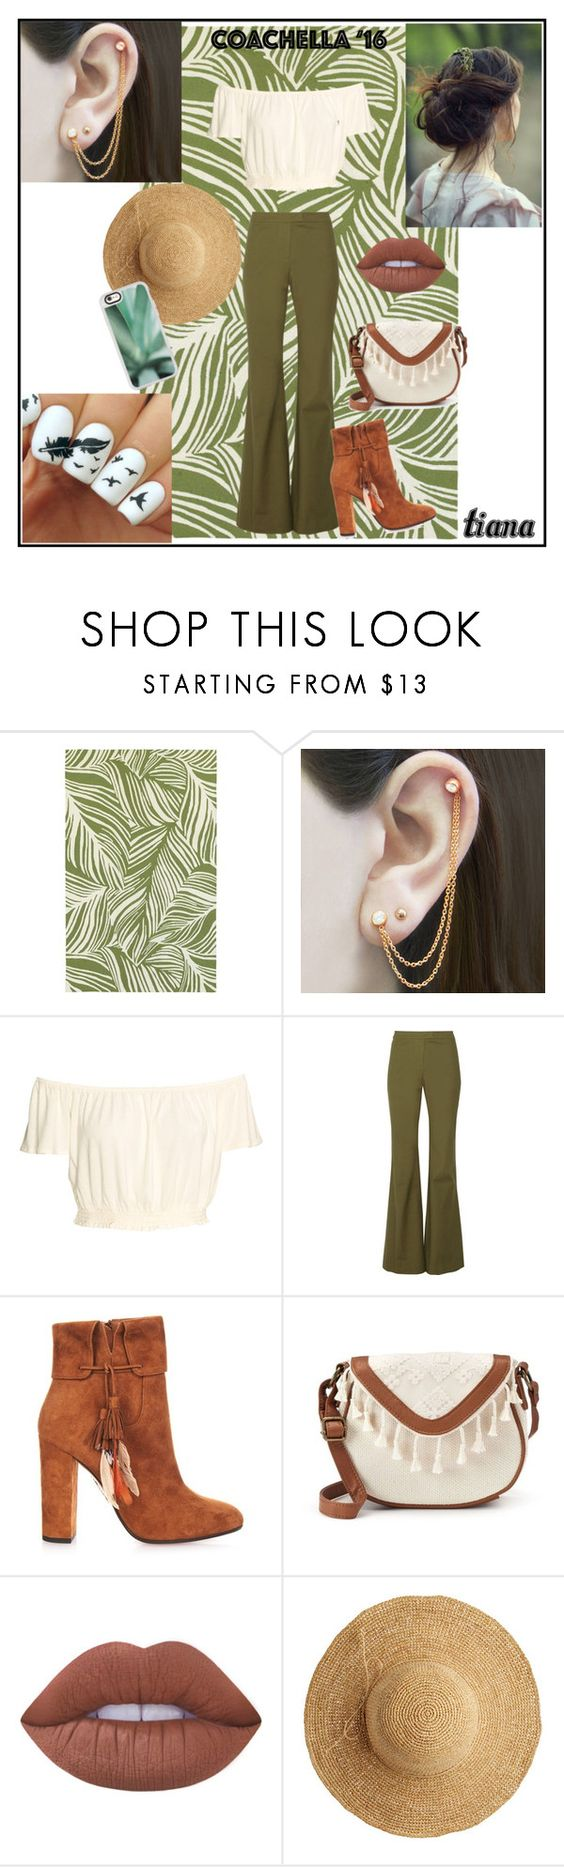 """Coachella (Tiana)"" by disneyprincessess4life ❤ liked on Polyvore featuring Oriental Weavers, Embers Gemstone Jewellery, 10 Crosby Derek Lam, Aquazzura, T-shirt & Jeans, Lime Crime, Flora Bella and Casetify"